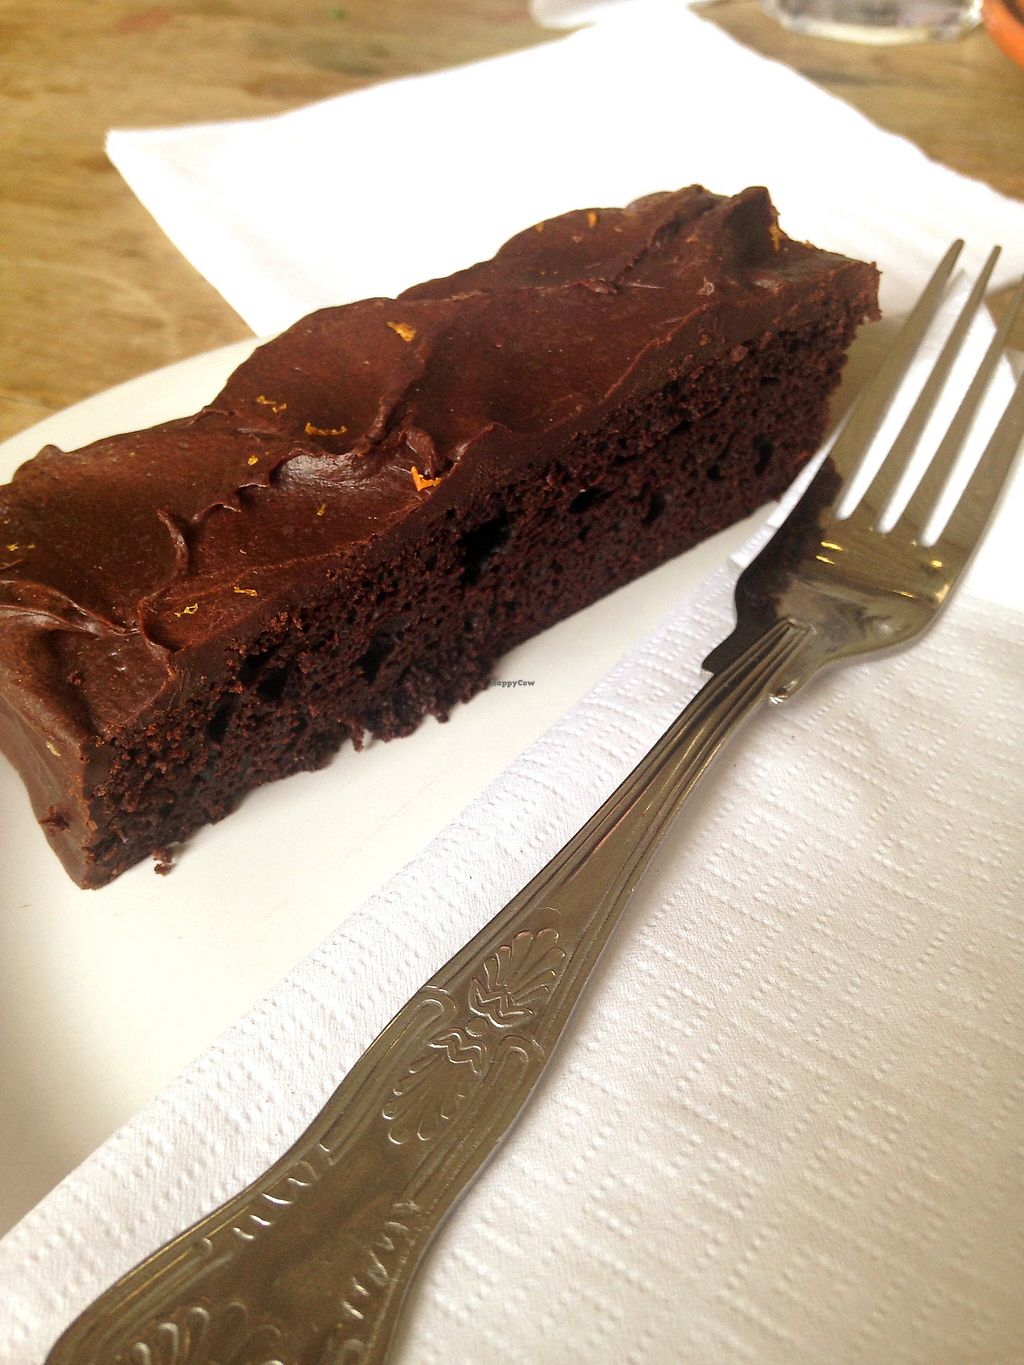 "Photo of Castle Farm Cafe  by <a href=""/members/profile/FranMcgarryArtist"">FranMcgarryArtist</a> <br/>Vegan Choc Orange Cake. Heavenly <br/> May 11, 2017  - <a href='/contact/abuse/image/76073/257839'>Report</a>"